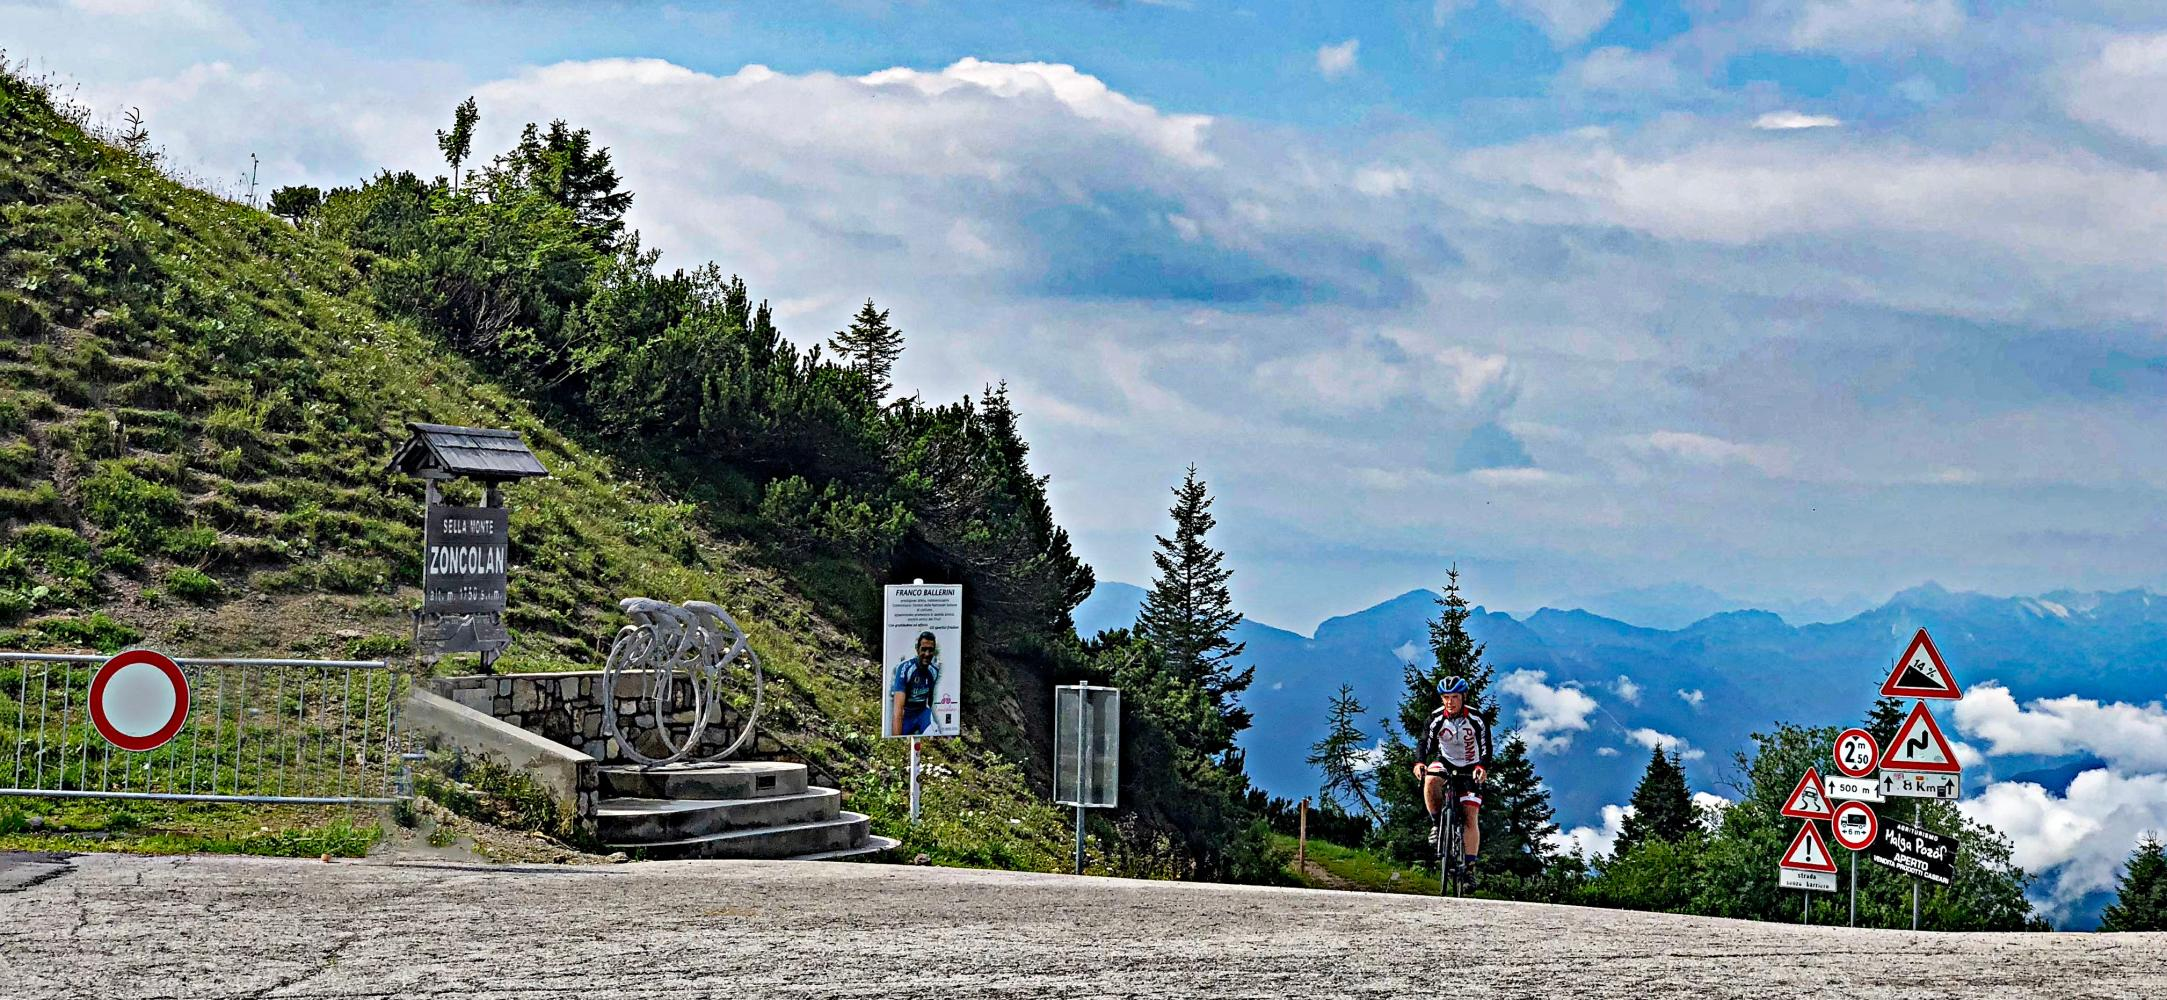 Monte Zoncolan (Ovaro) Bike Climb - PJAMM Cycling